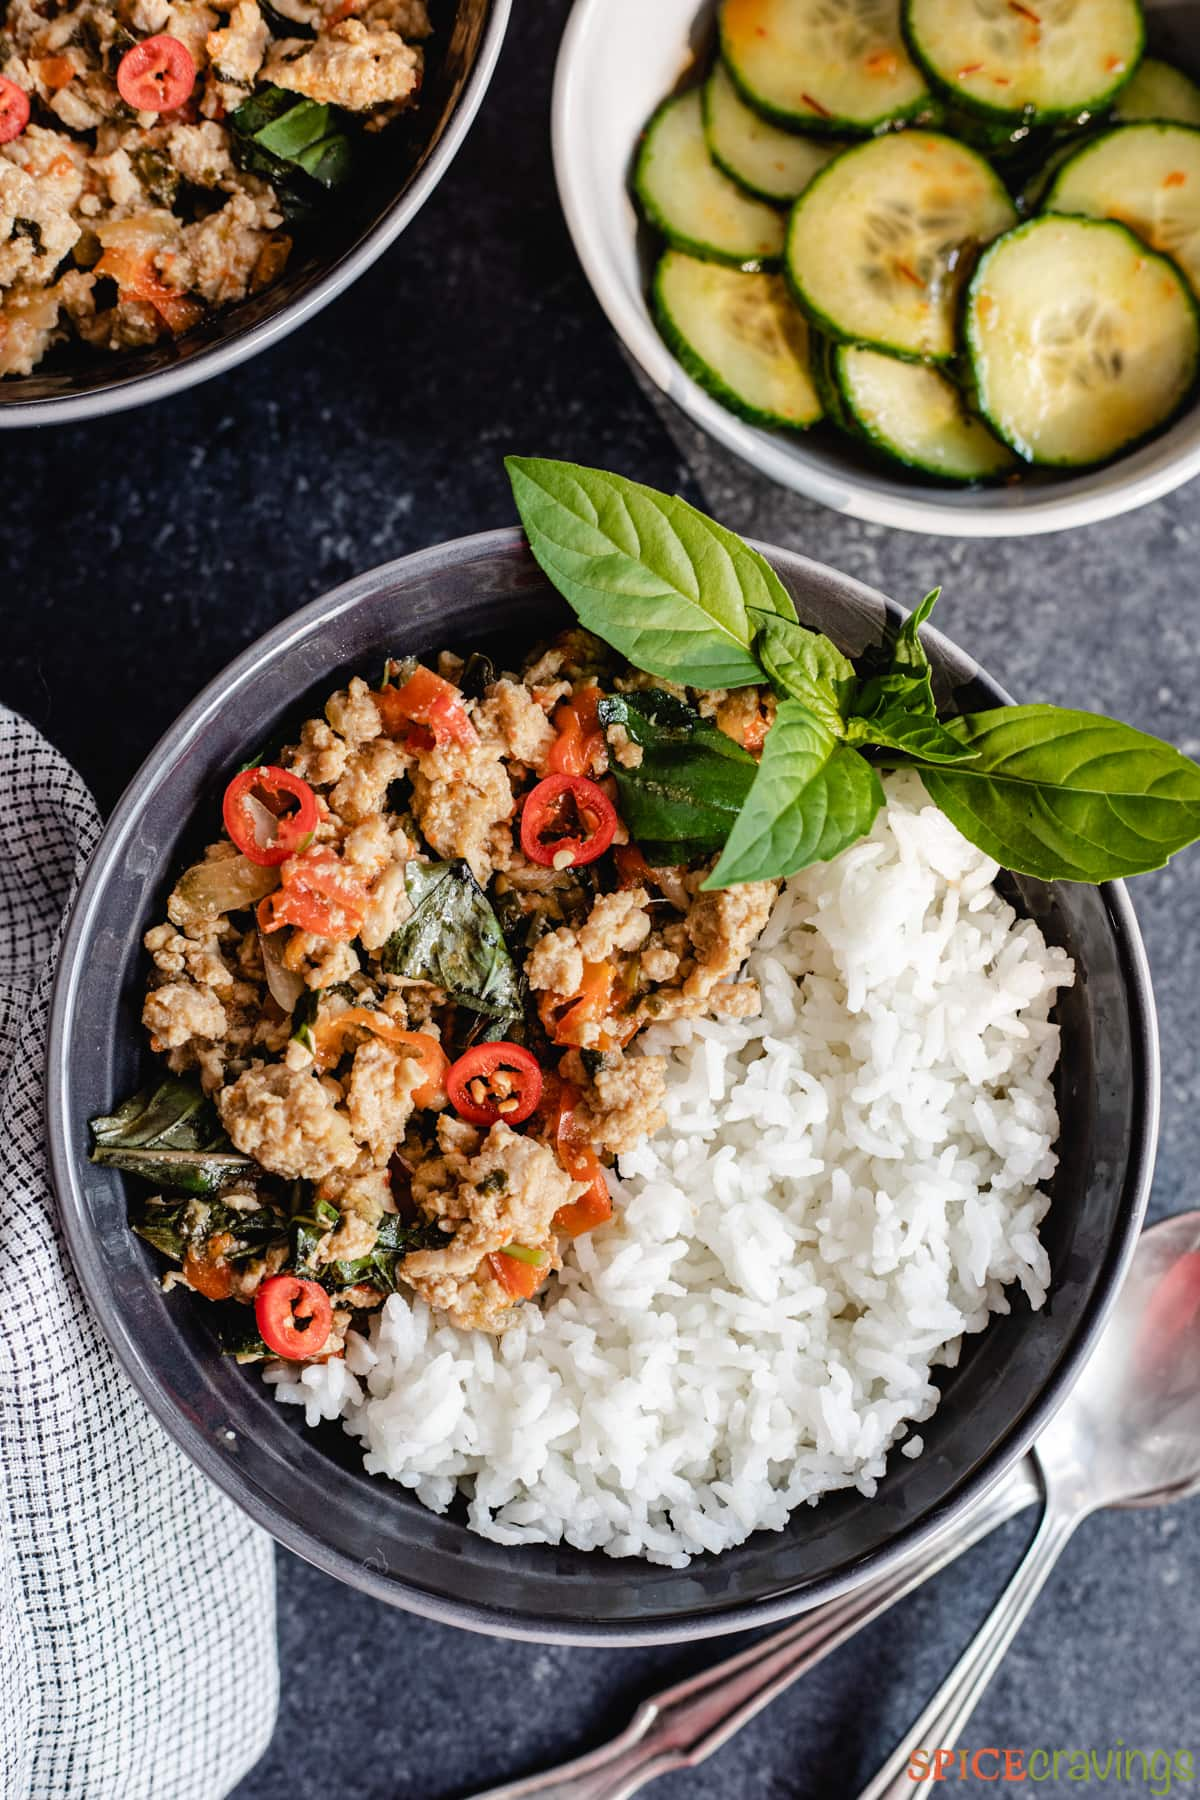 A bowl of chicken and vegetables topped with fresh basil and served with rice